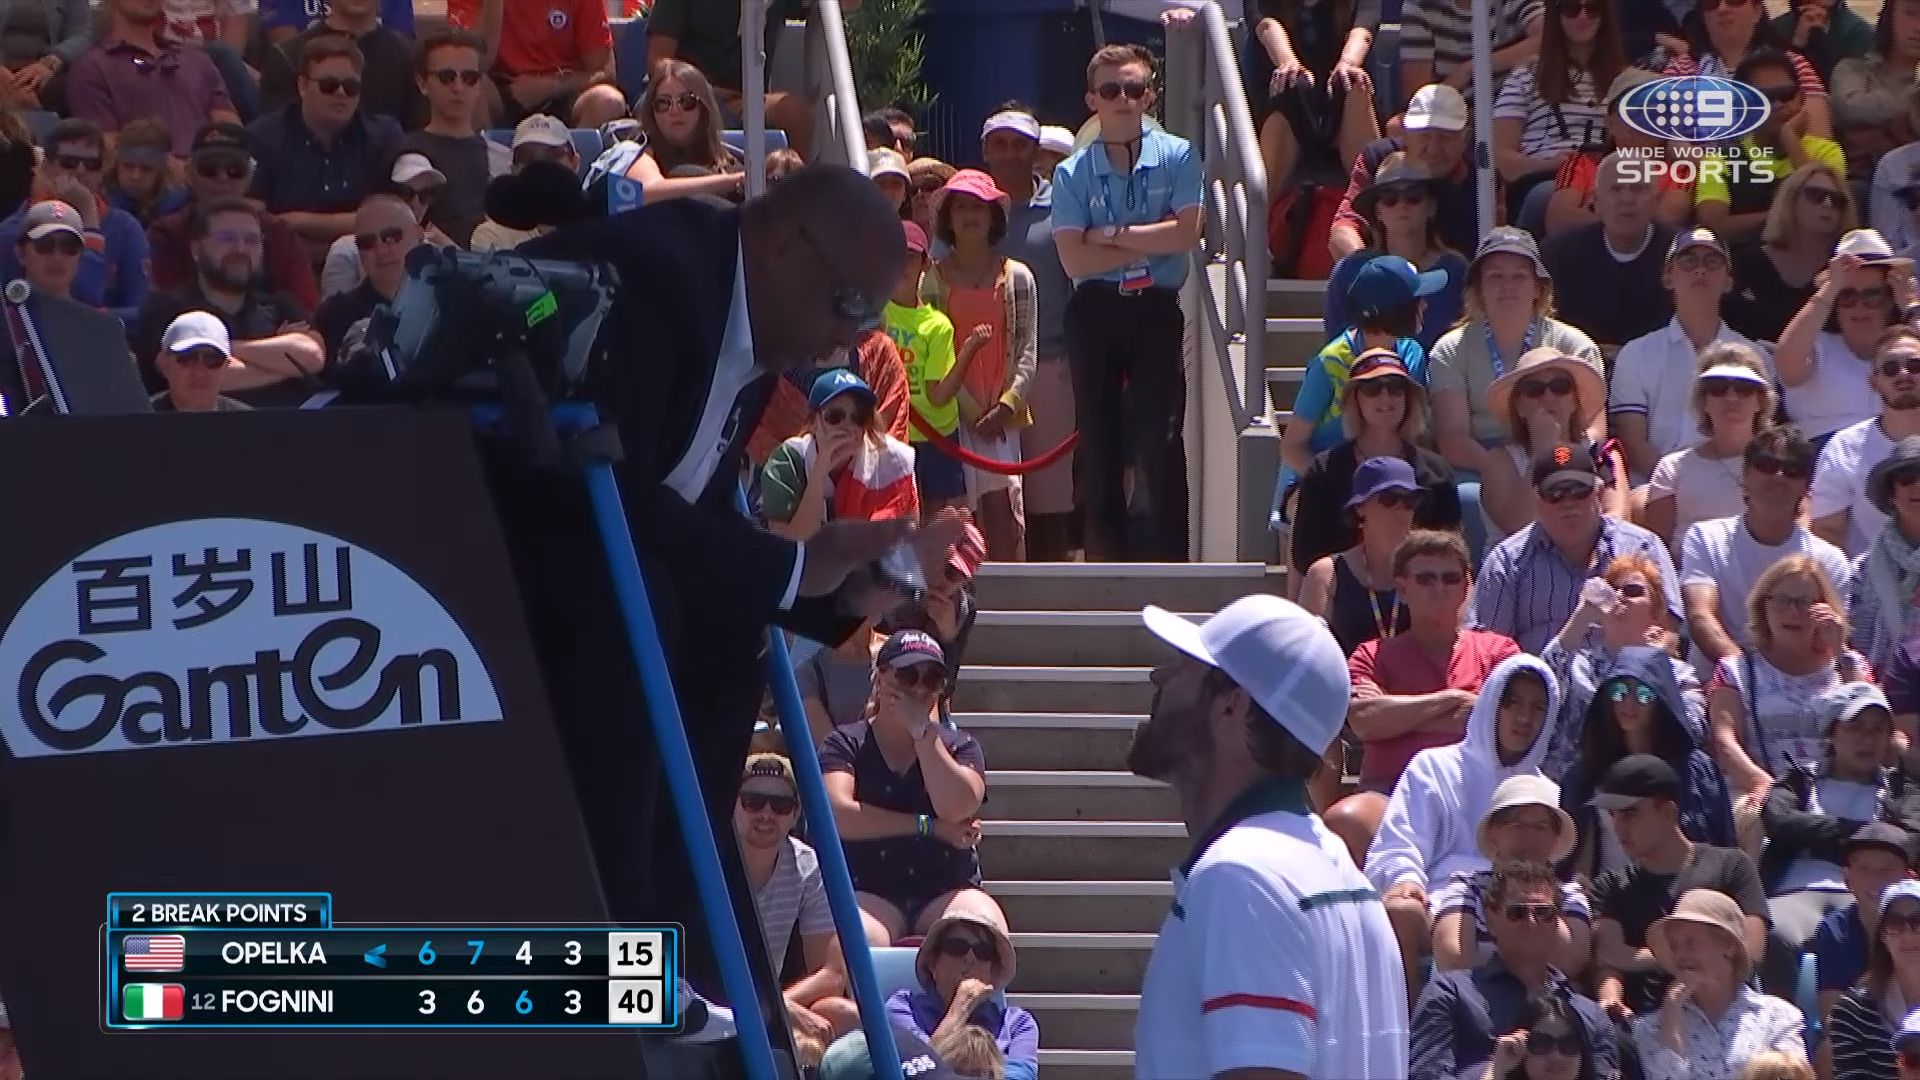 Reilly Opelka Left To Rue Foul Mouthed Tirade At Umpire